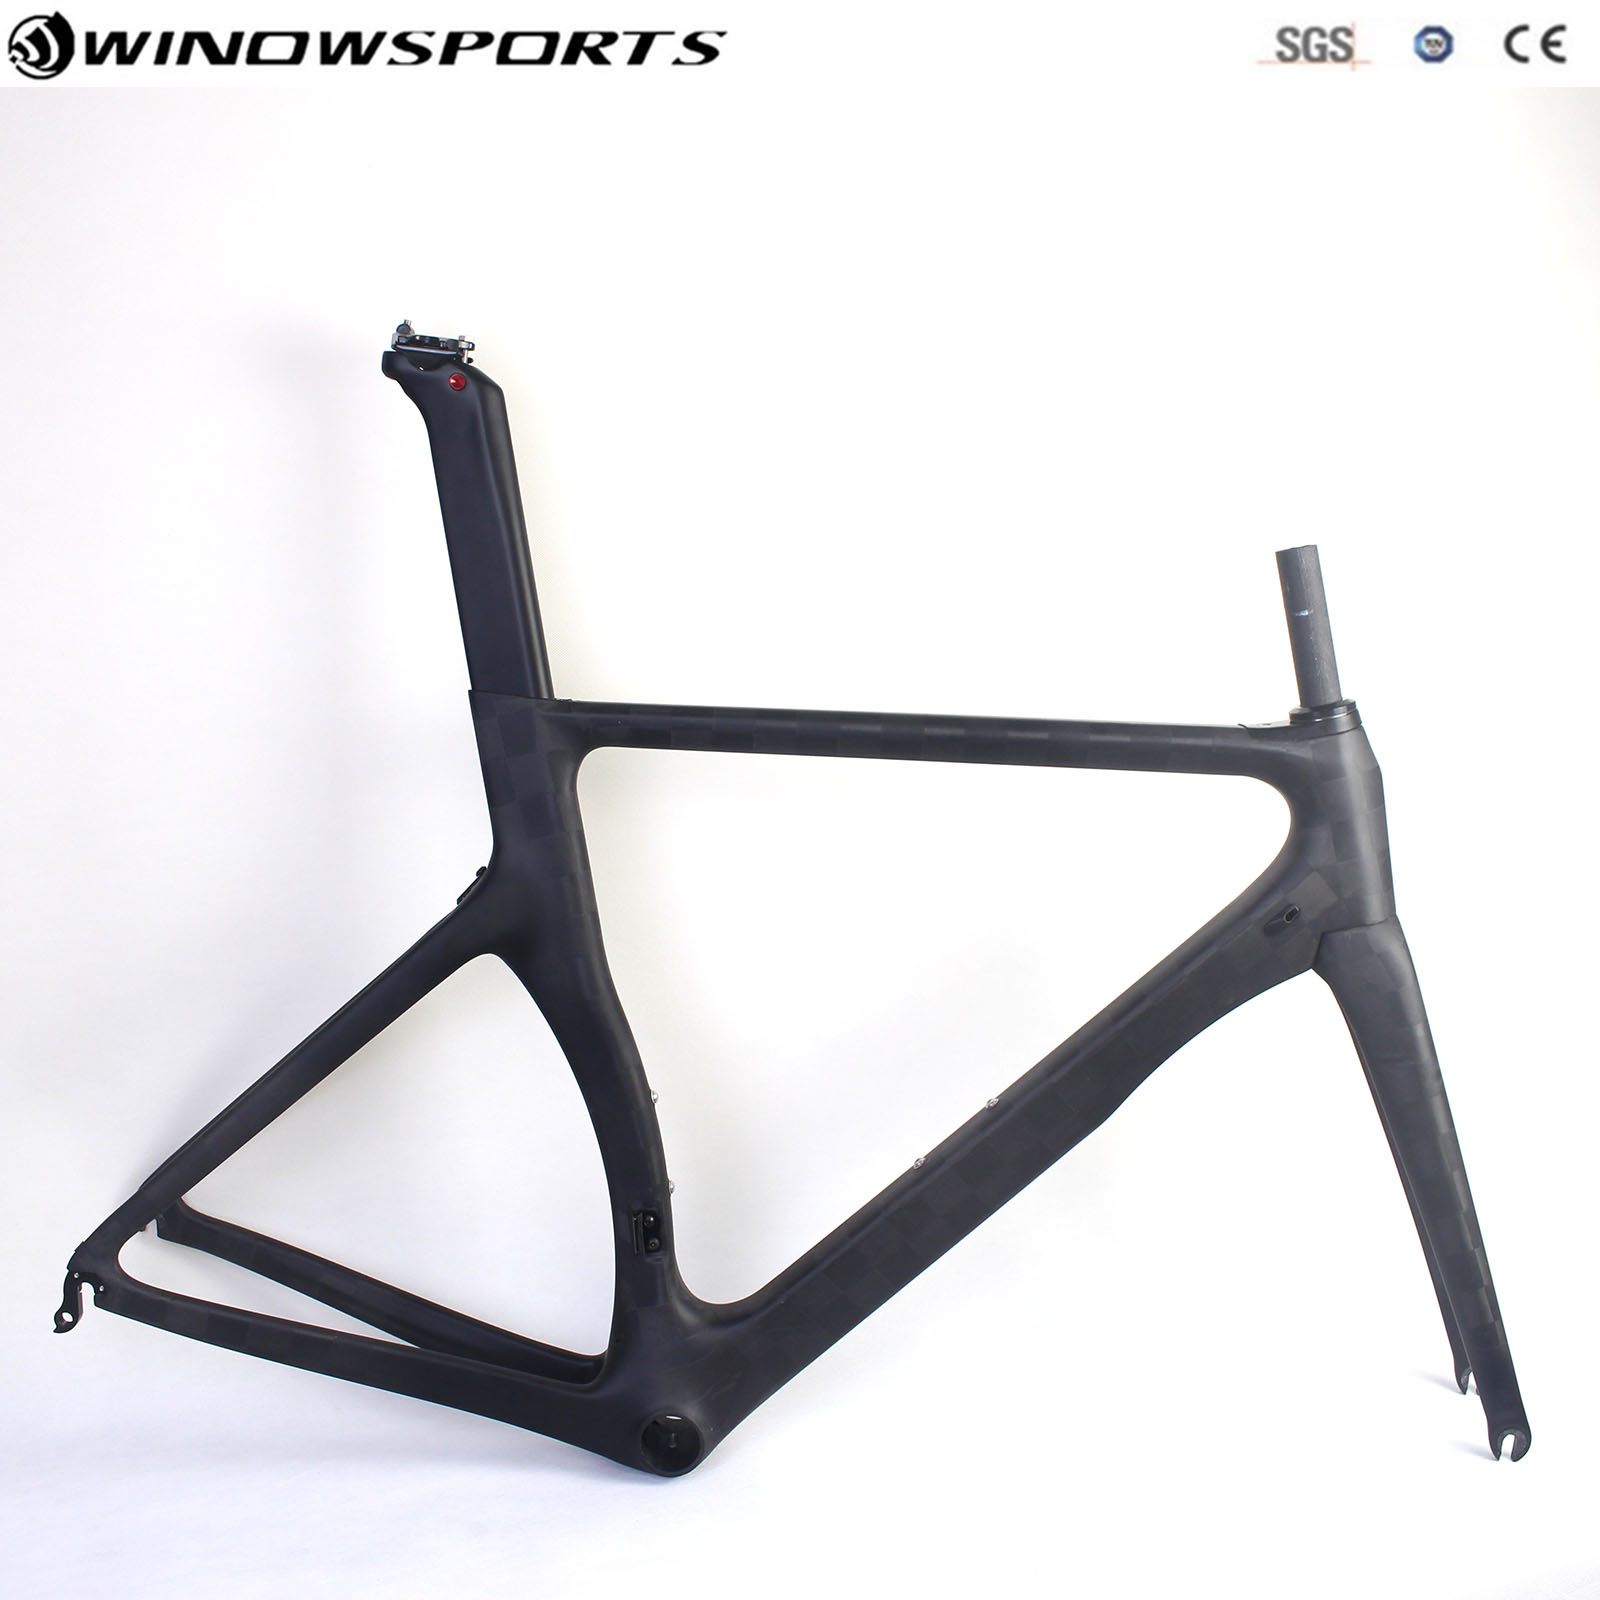 Full Carbon Aero Road Bike Frame With Headset Aero Racing Bicycle Carbon Frameset Taiwan Road Bike Frame